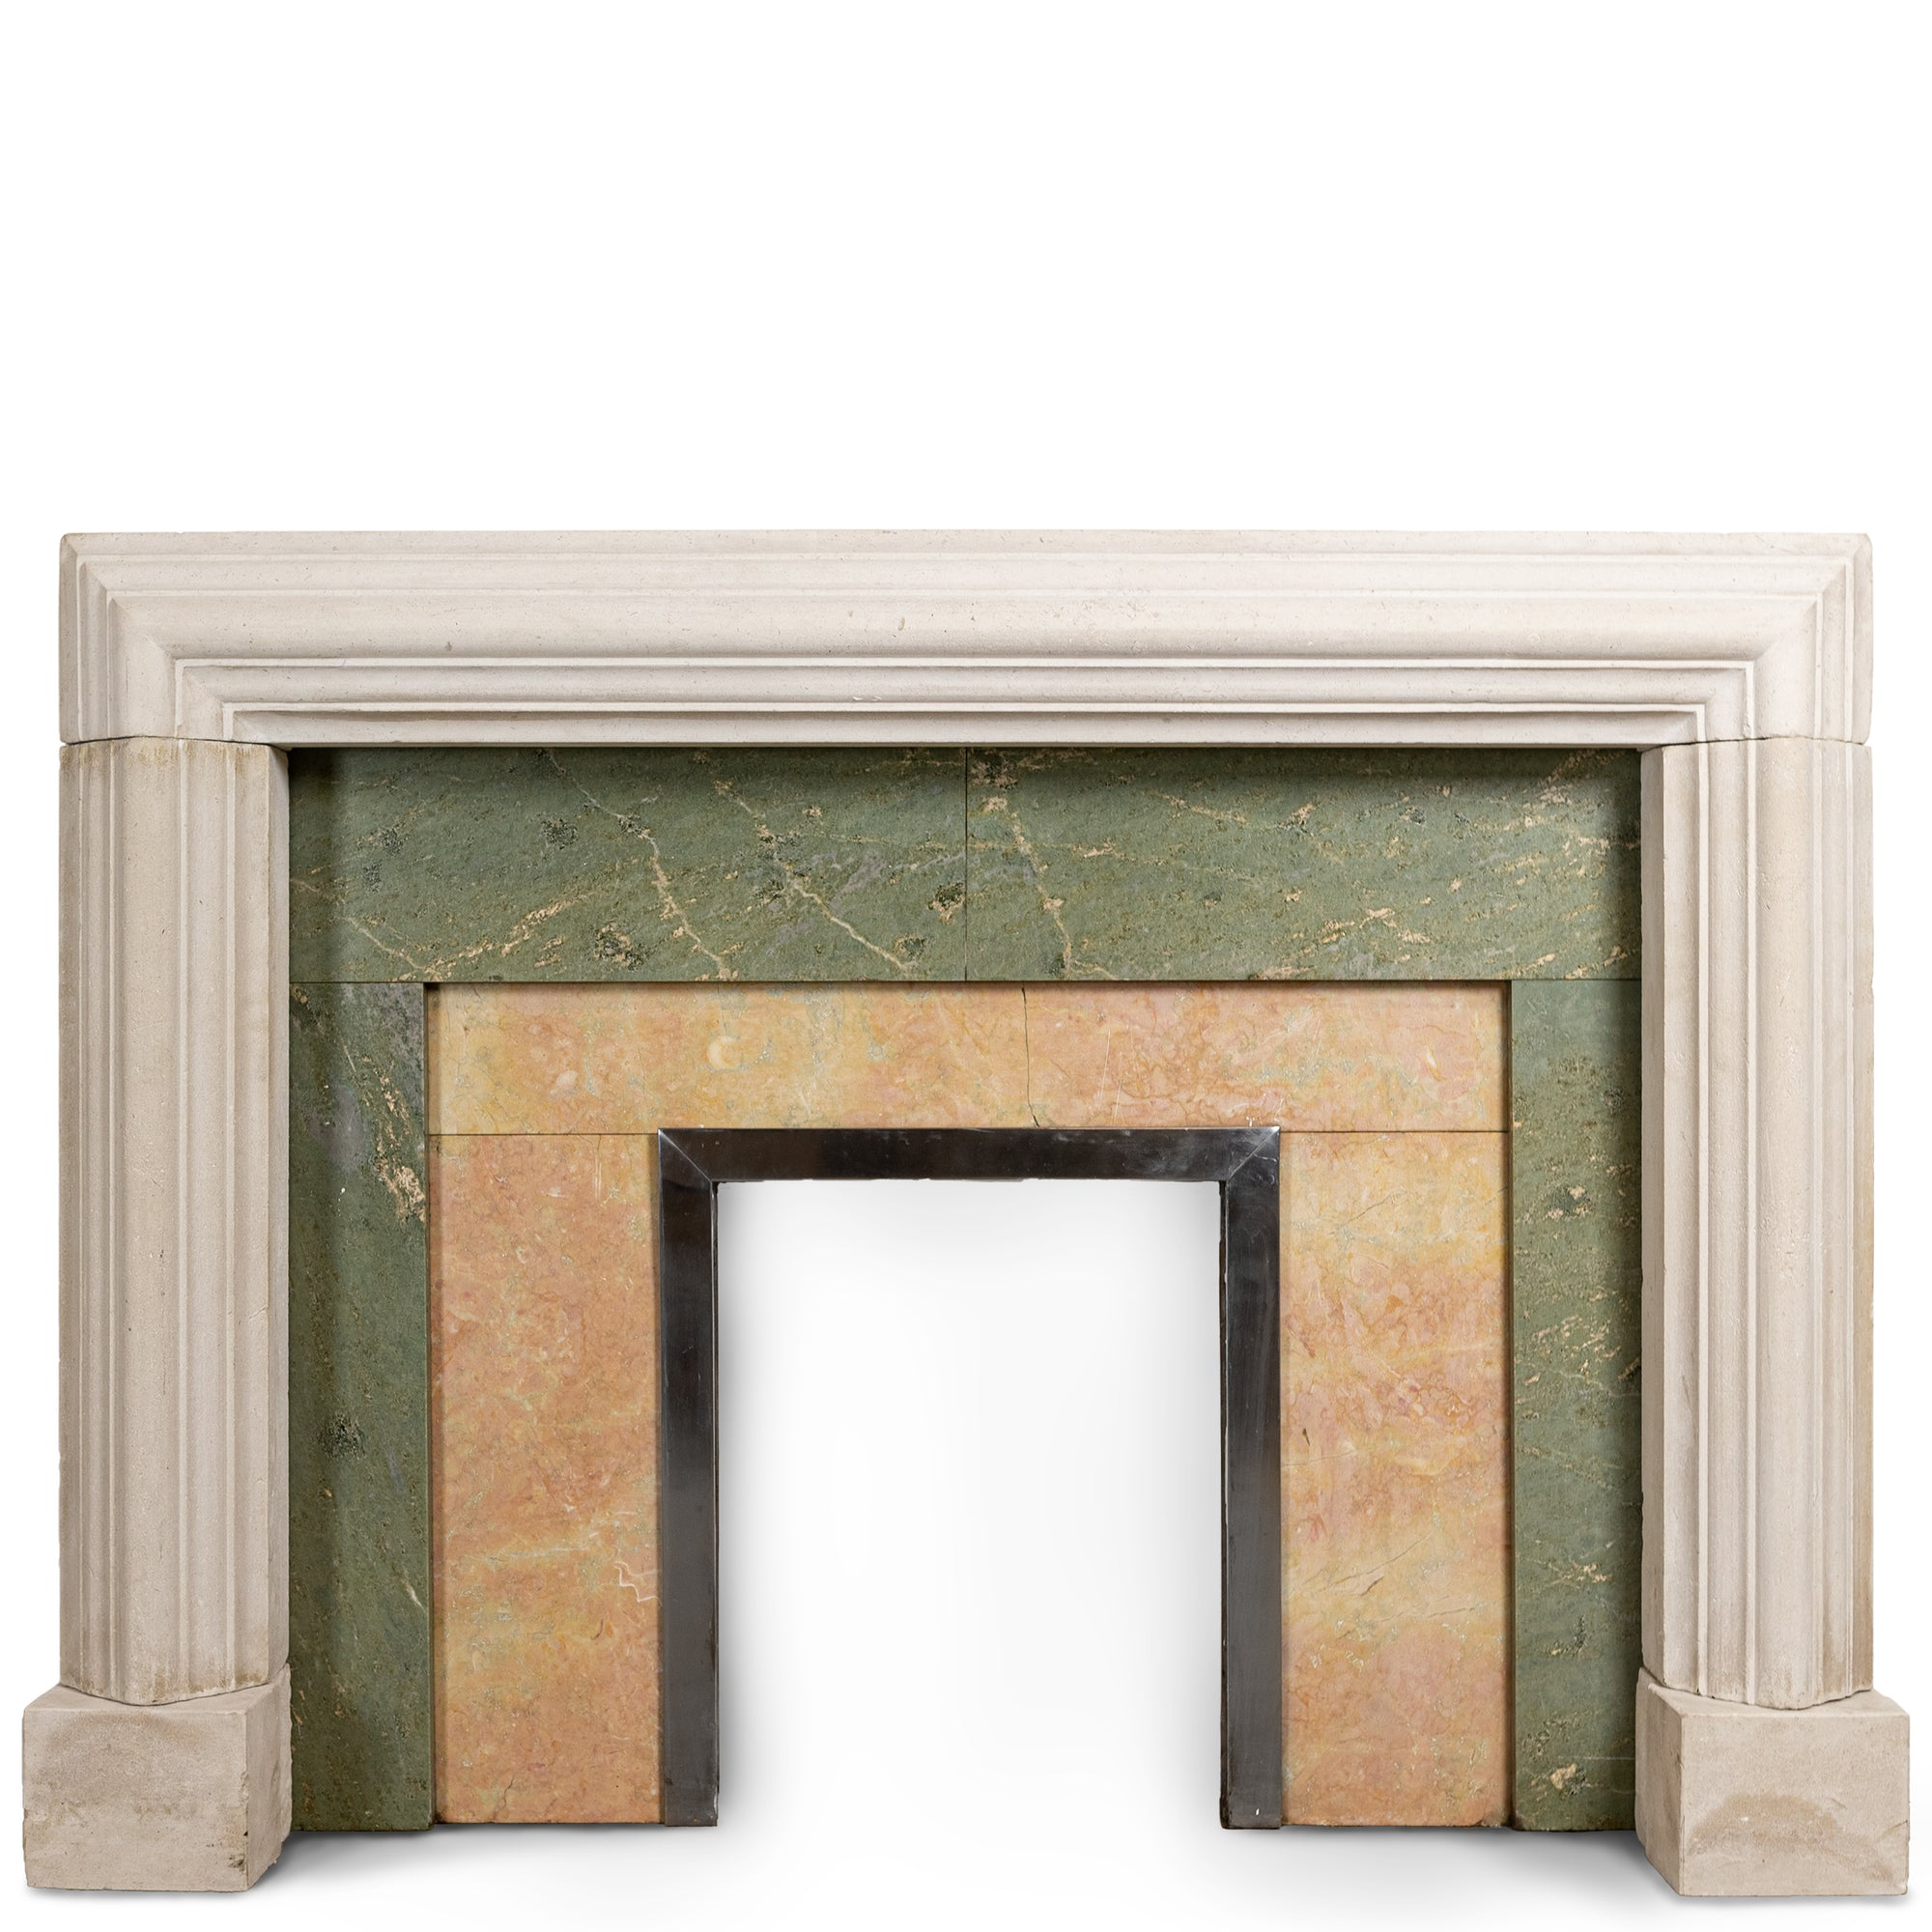 Striking Art Deco Portland Stone Bolection Fireplace Surround with Marble Inserts. | The Architectural Forum